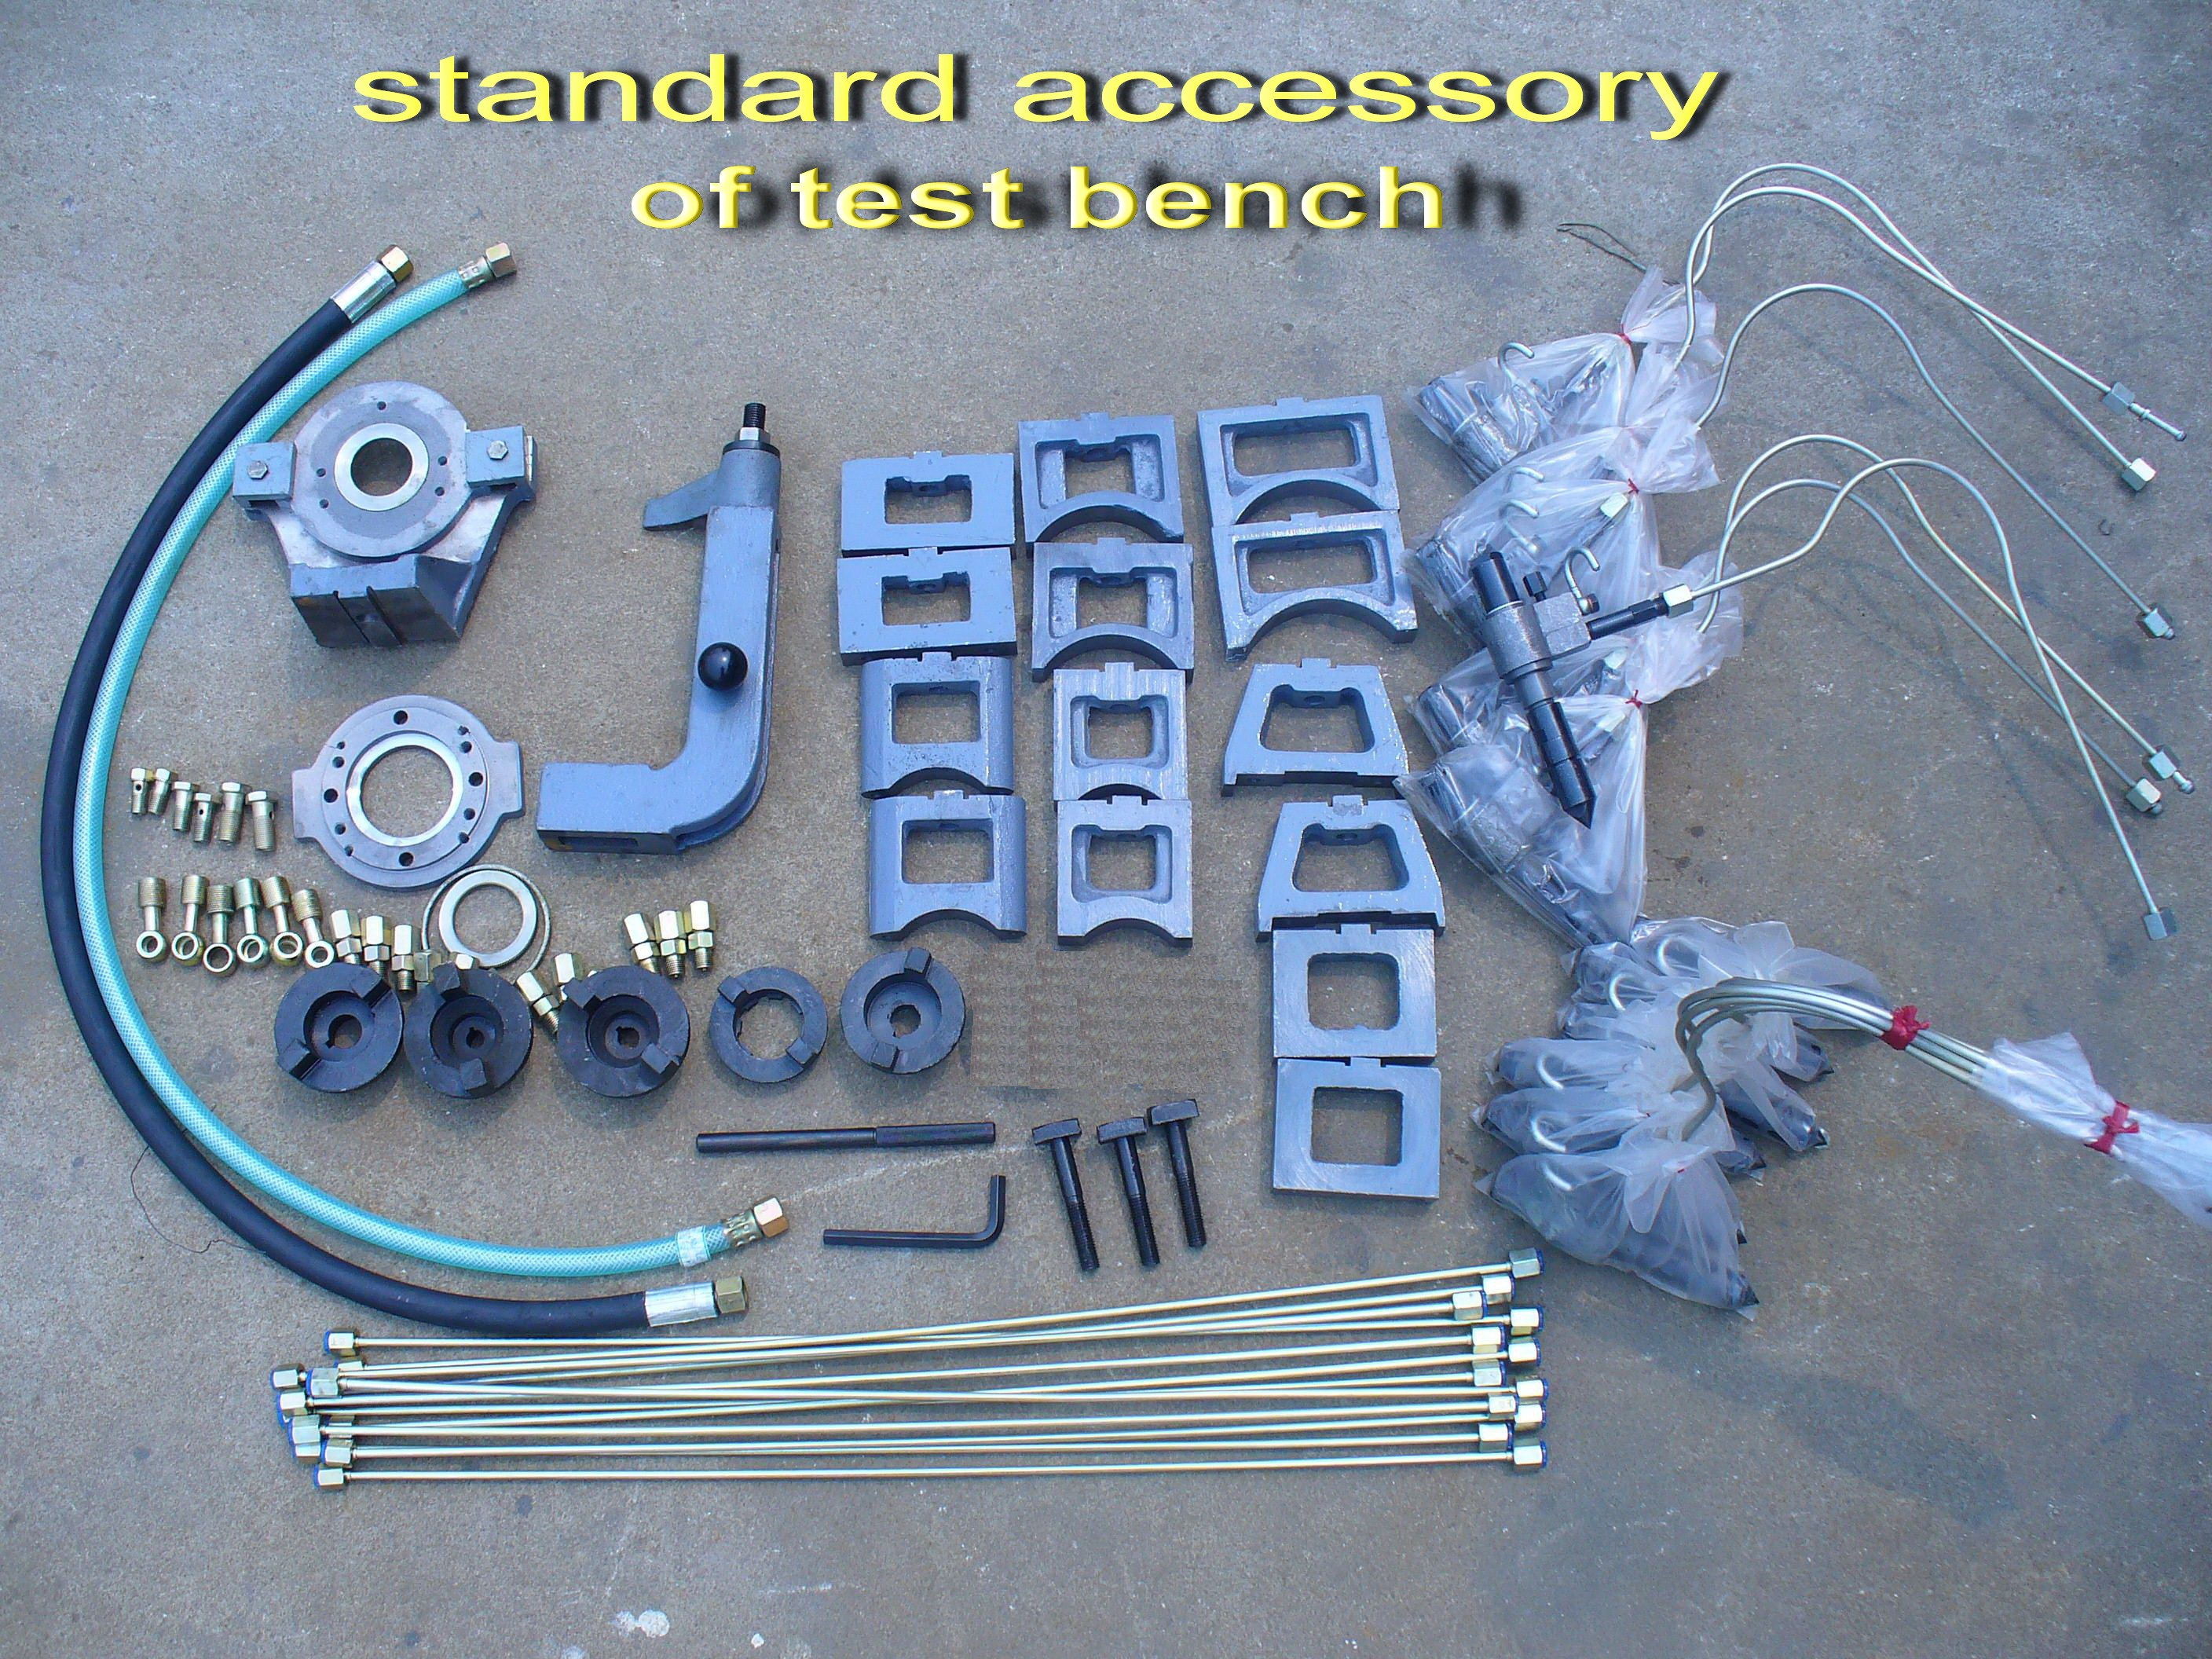 Standard accessory of test bench.jpg